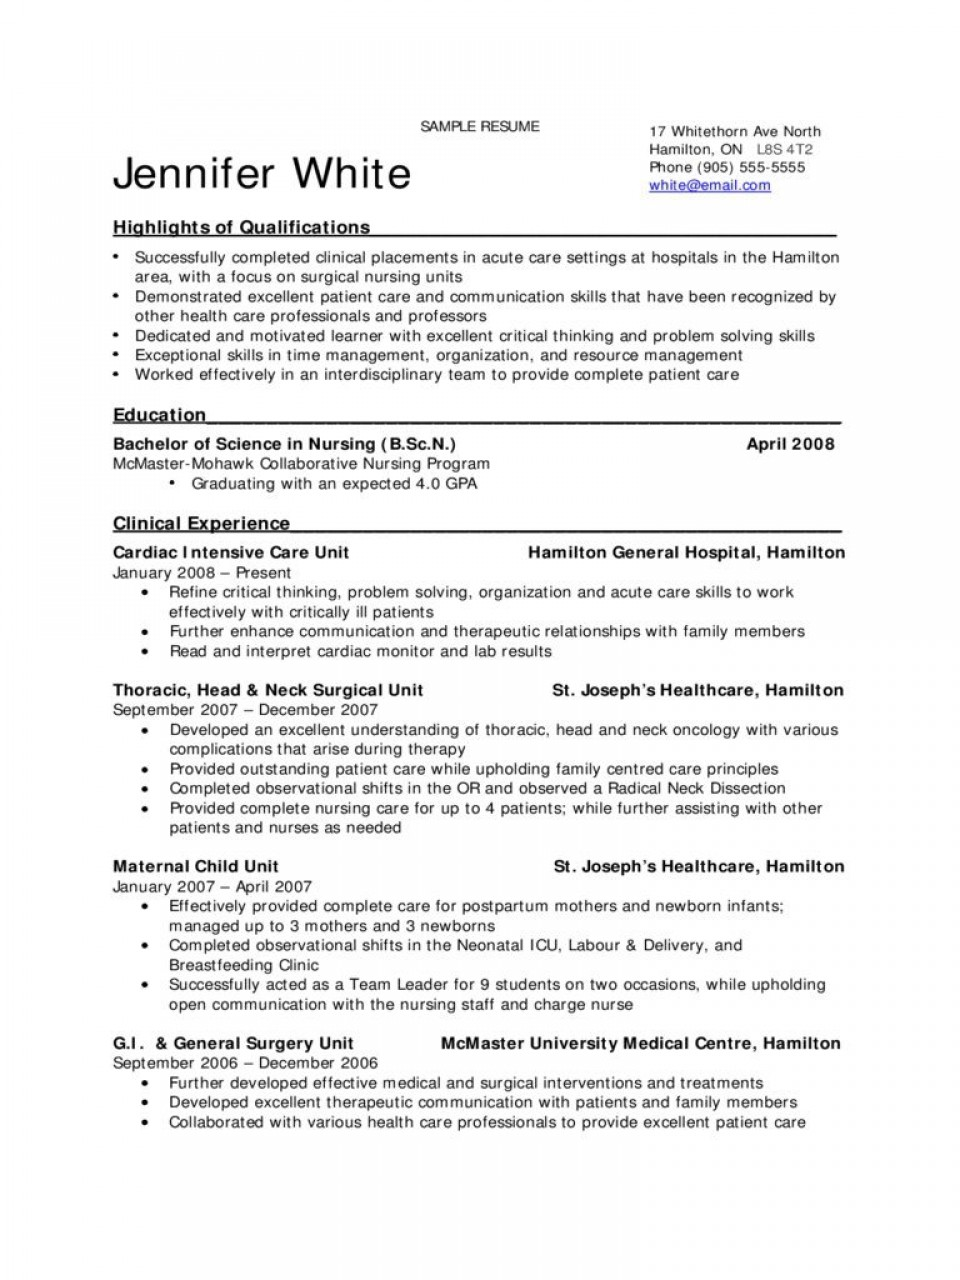 009 Excellent New Grad Nursing Resume Template Example  Nurse Graduate Practitioner960